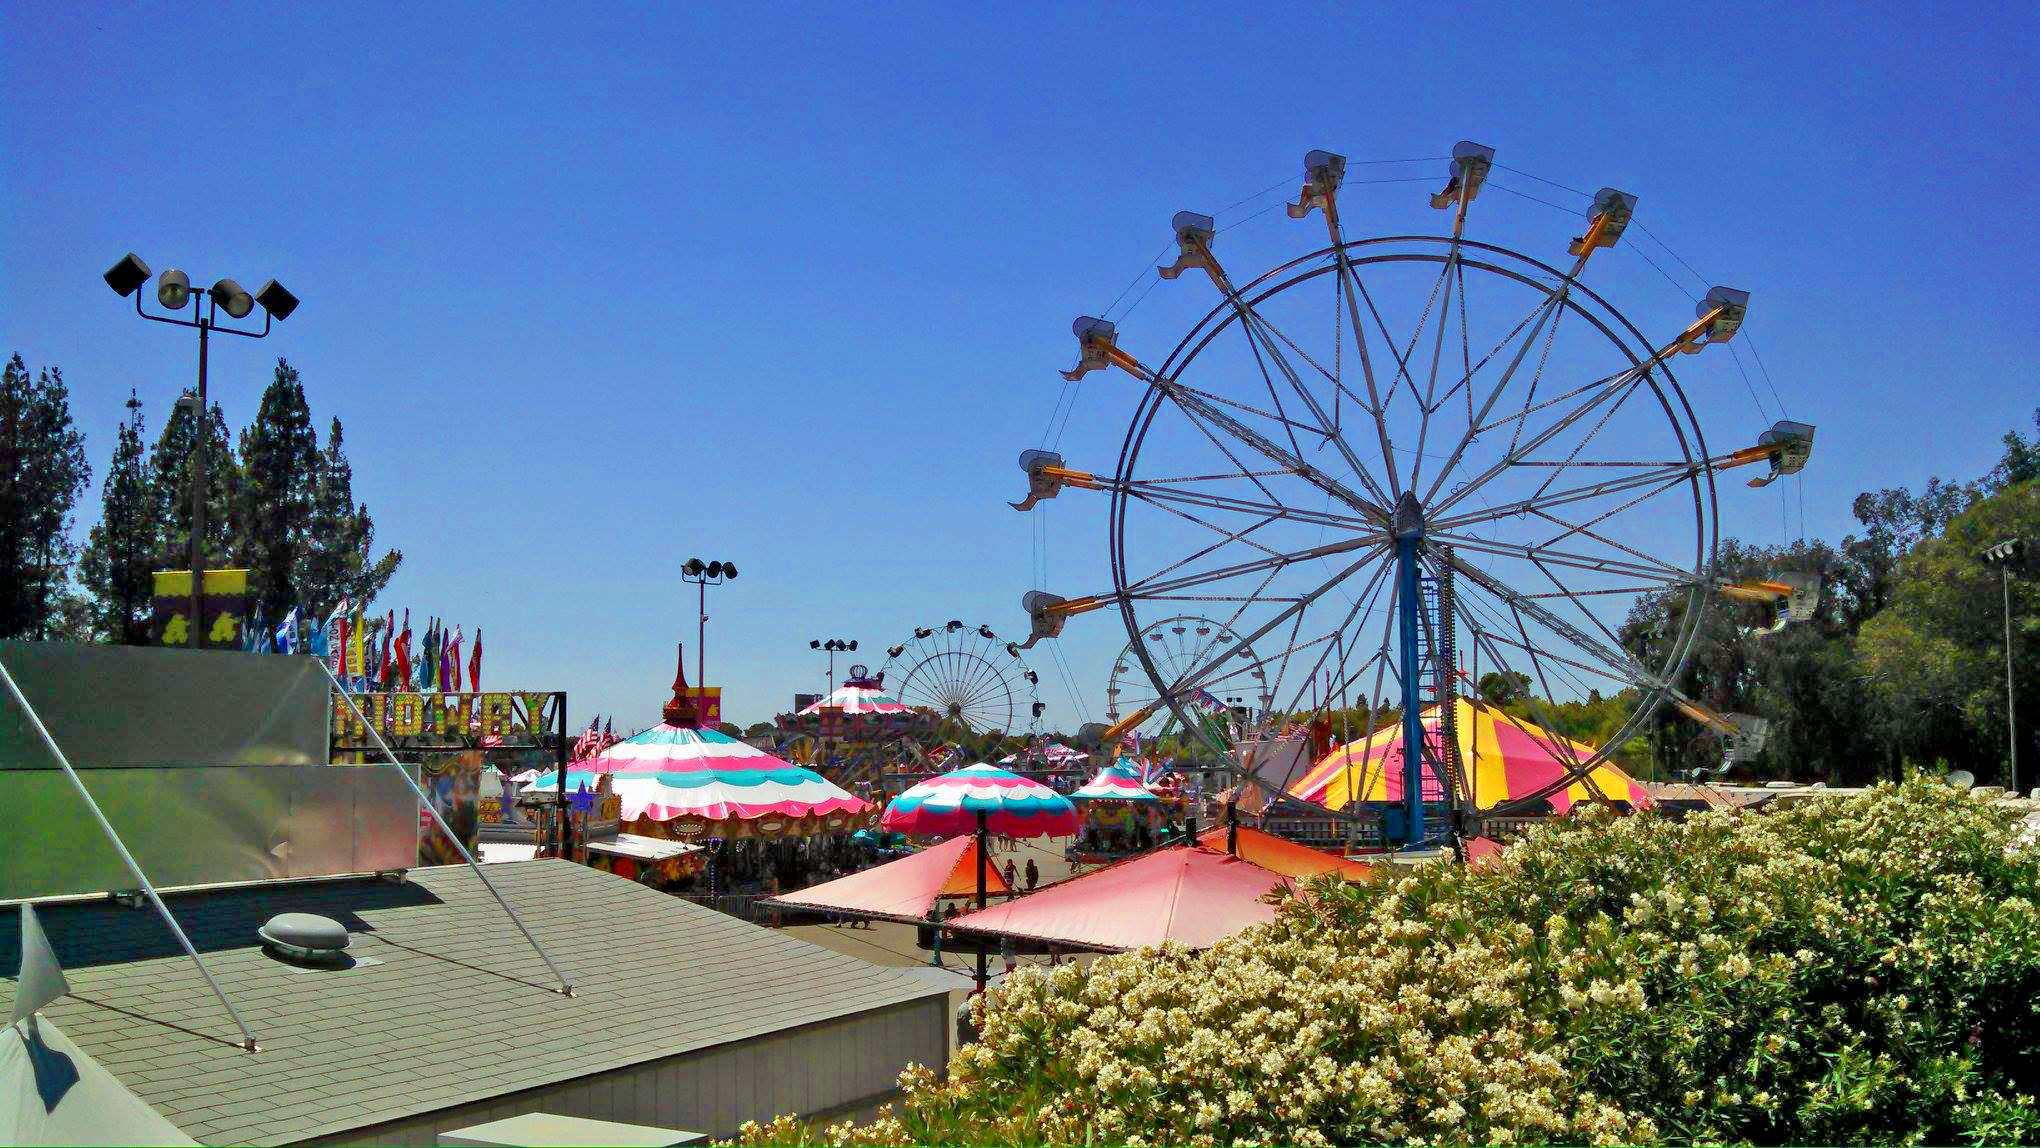 Best State Fairs in the Country - State Fair Dates